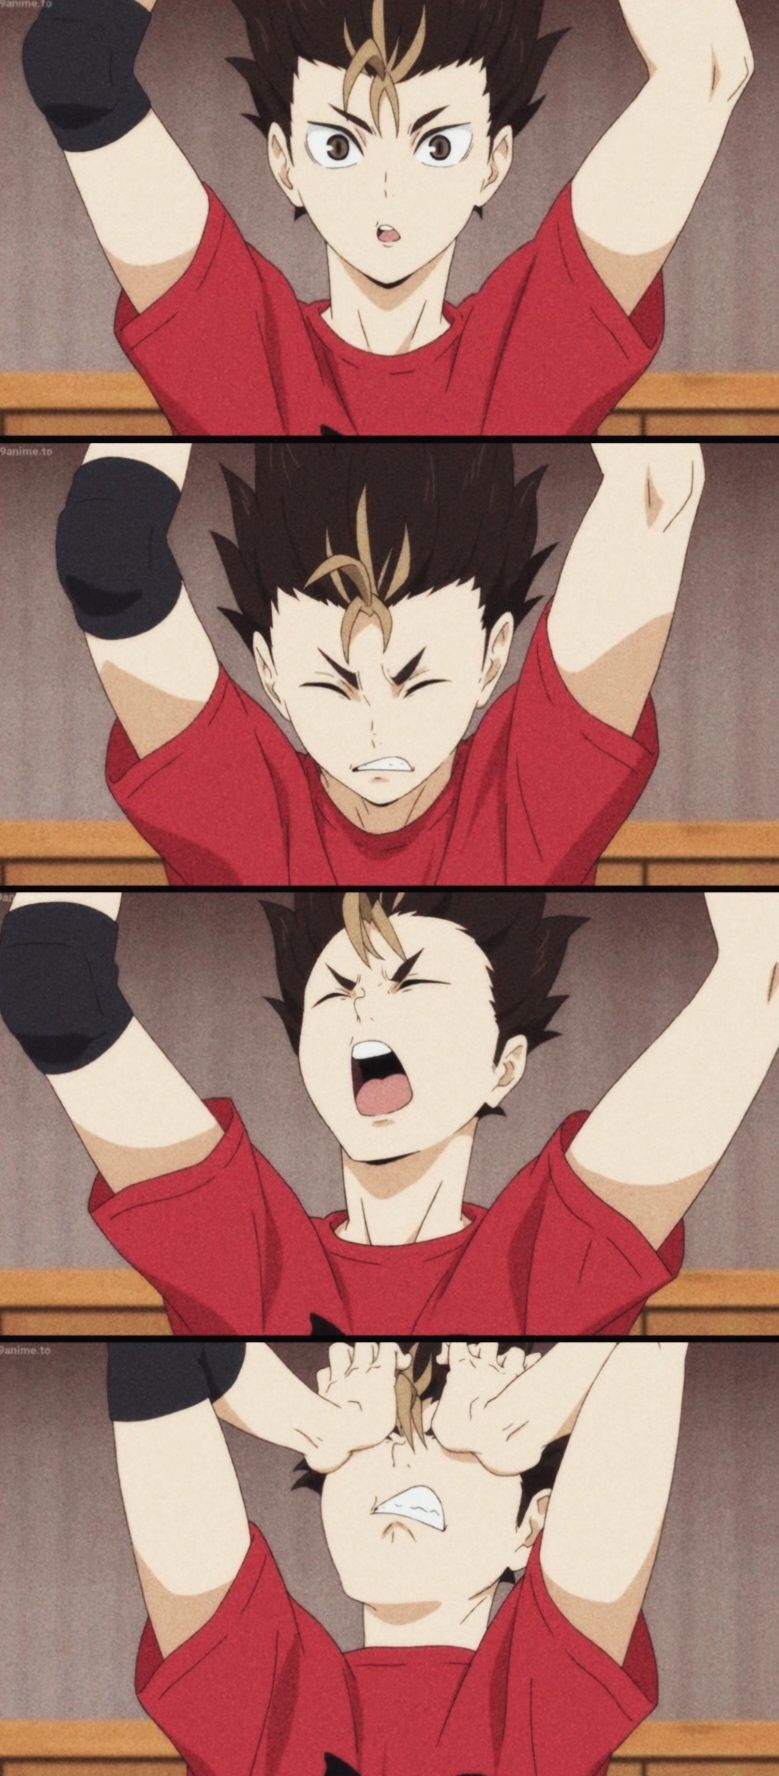 || AIRYUU ON PINTEREST || Haikyuu!! 4 fourth season, episode 06; Nishinoya Yuu #anime #nishinoya #nishinoyayuu #haikyuu #hq wallpaper libero collage, so cute